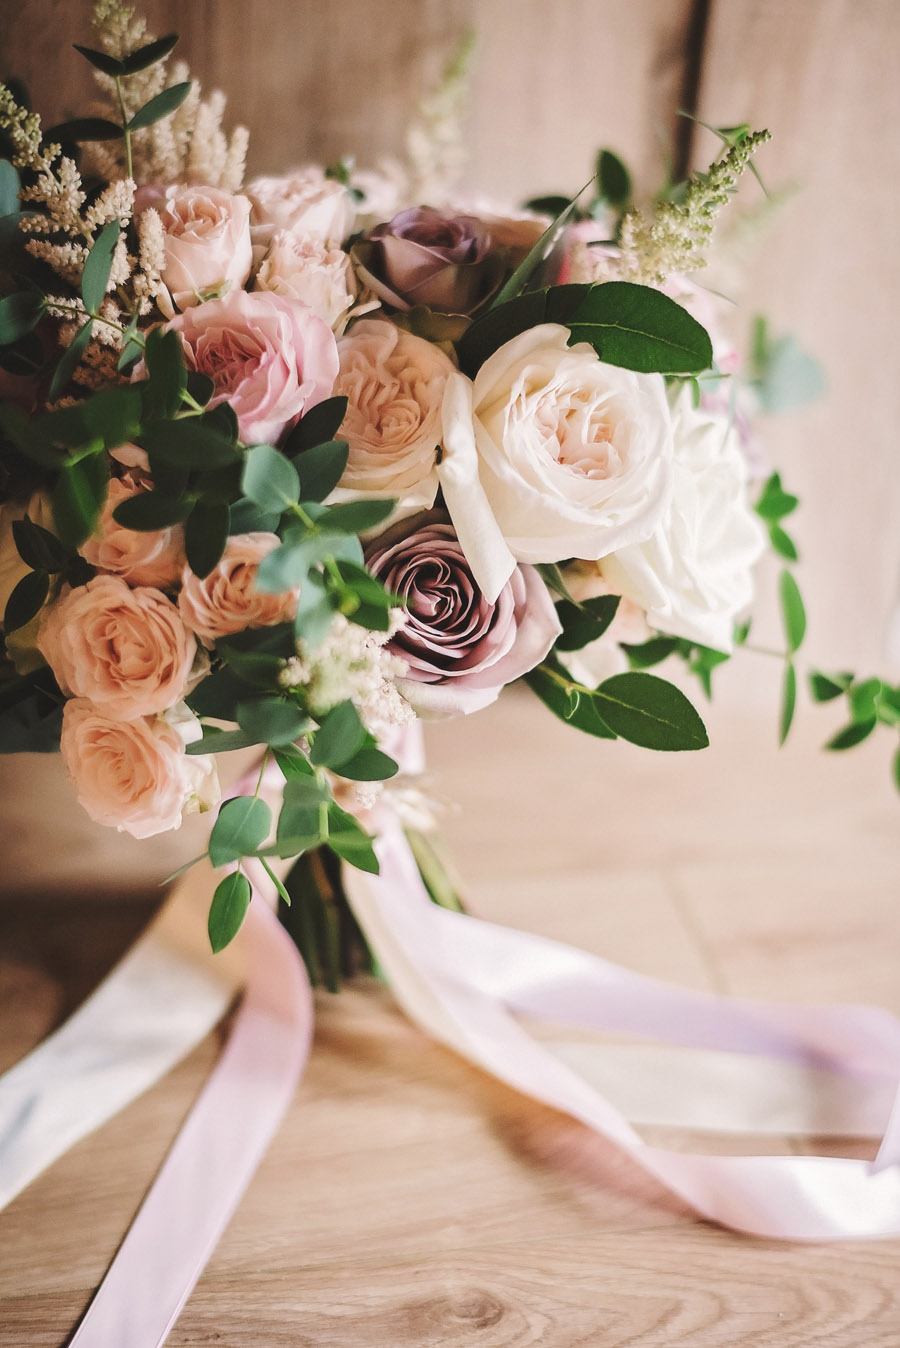 Eversholt Hall wedding with feminine floral styling, image credit Matthew Bishop Photography (3)